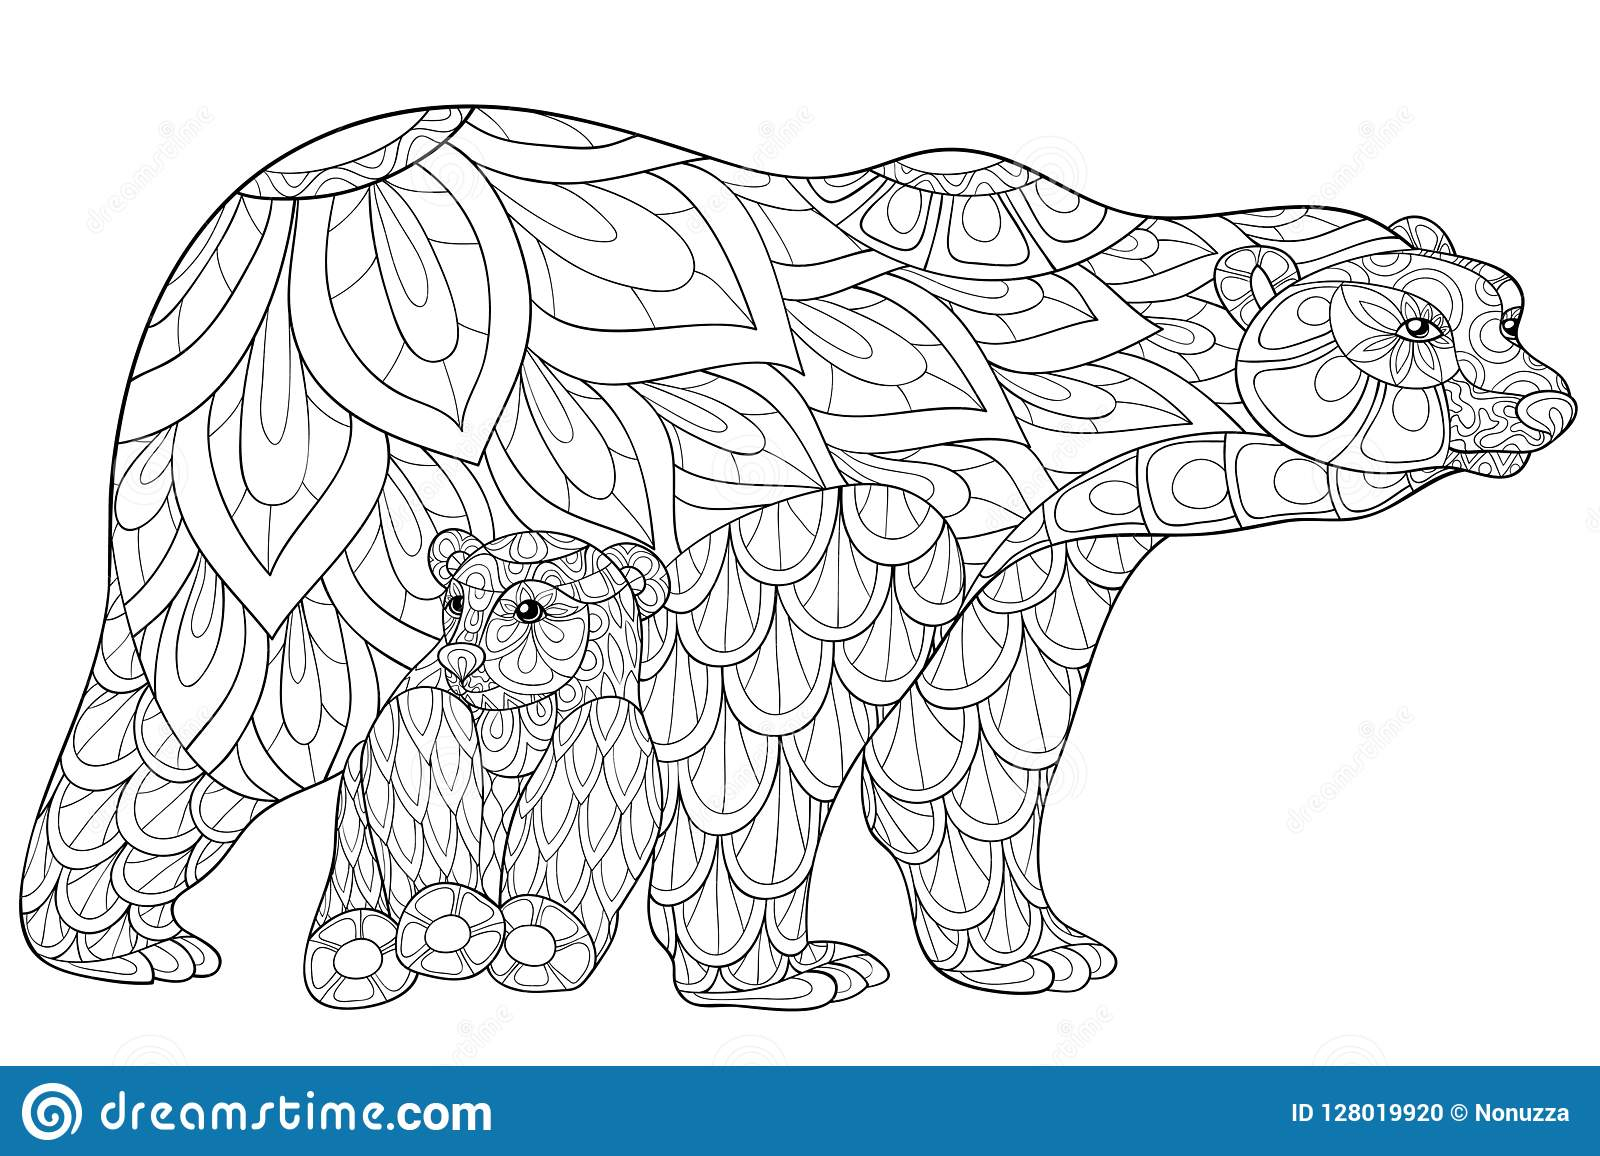 Adult Coloring Book,page A Cute Bear Family Image For